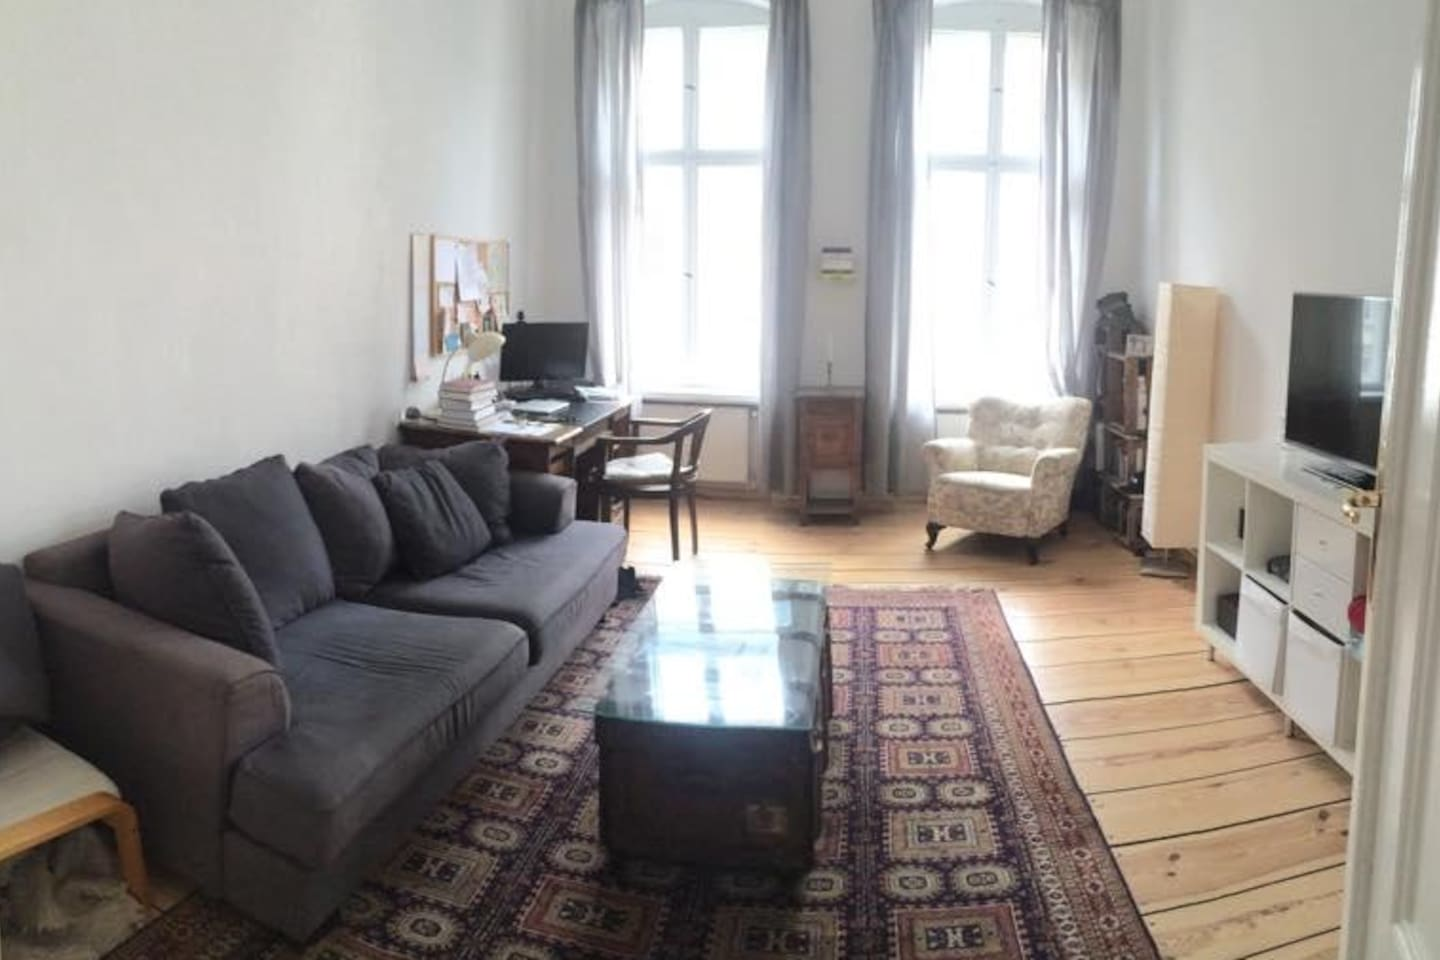 big, bright room with a comfy couch and a 3D television